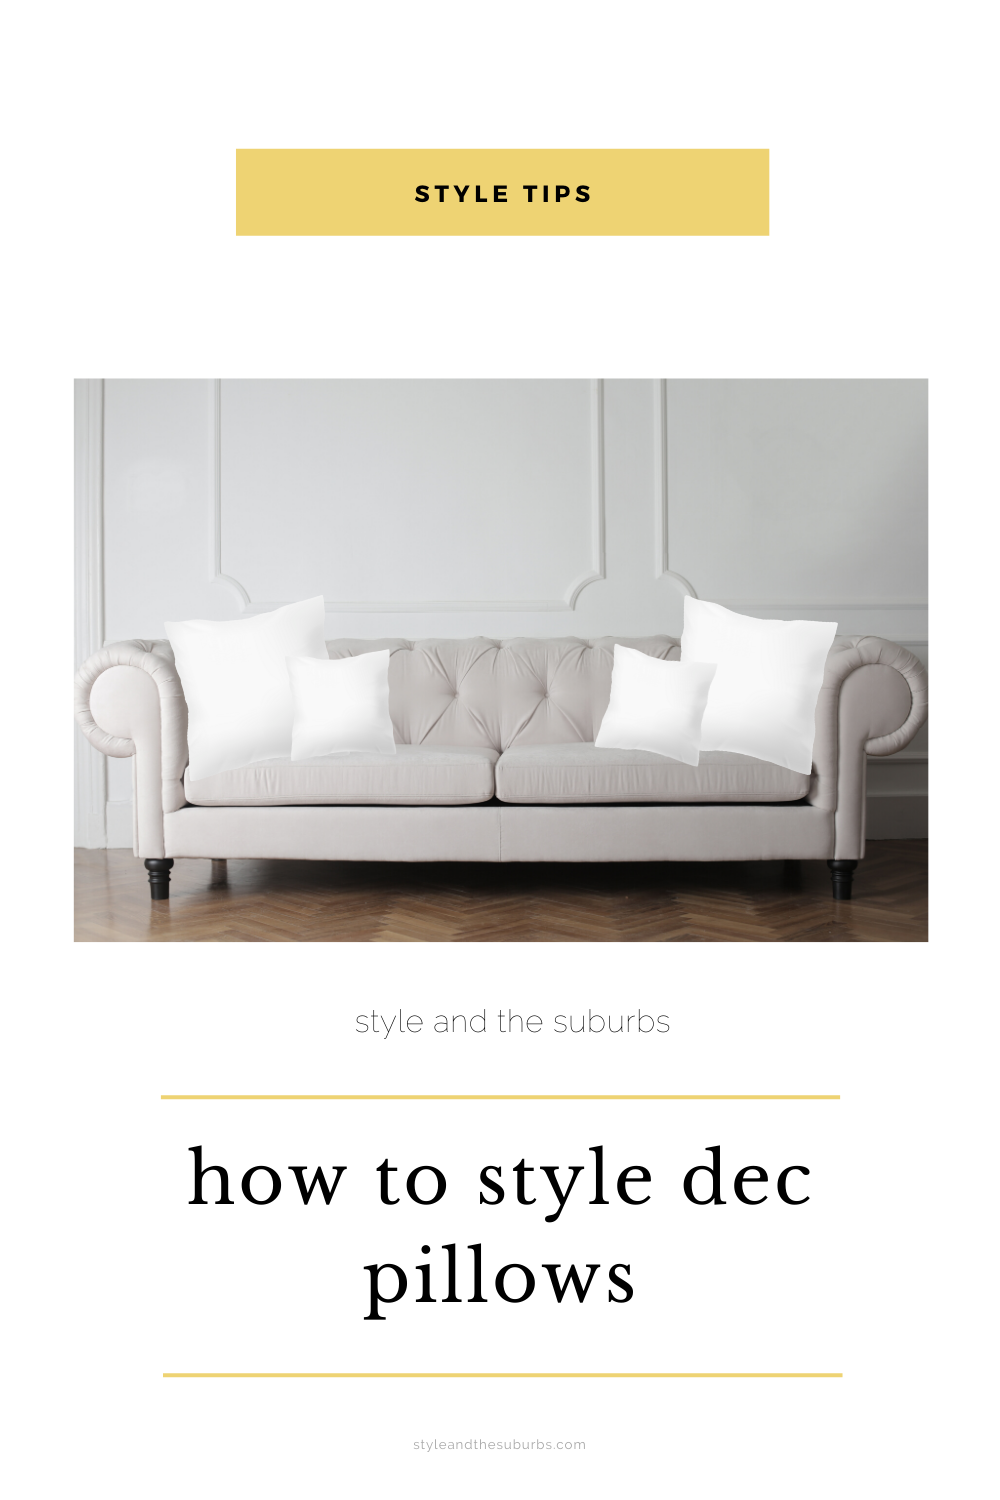 How To Style Dec Pillows | Style & the Suburbs